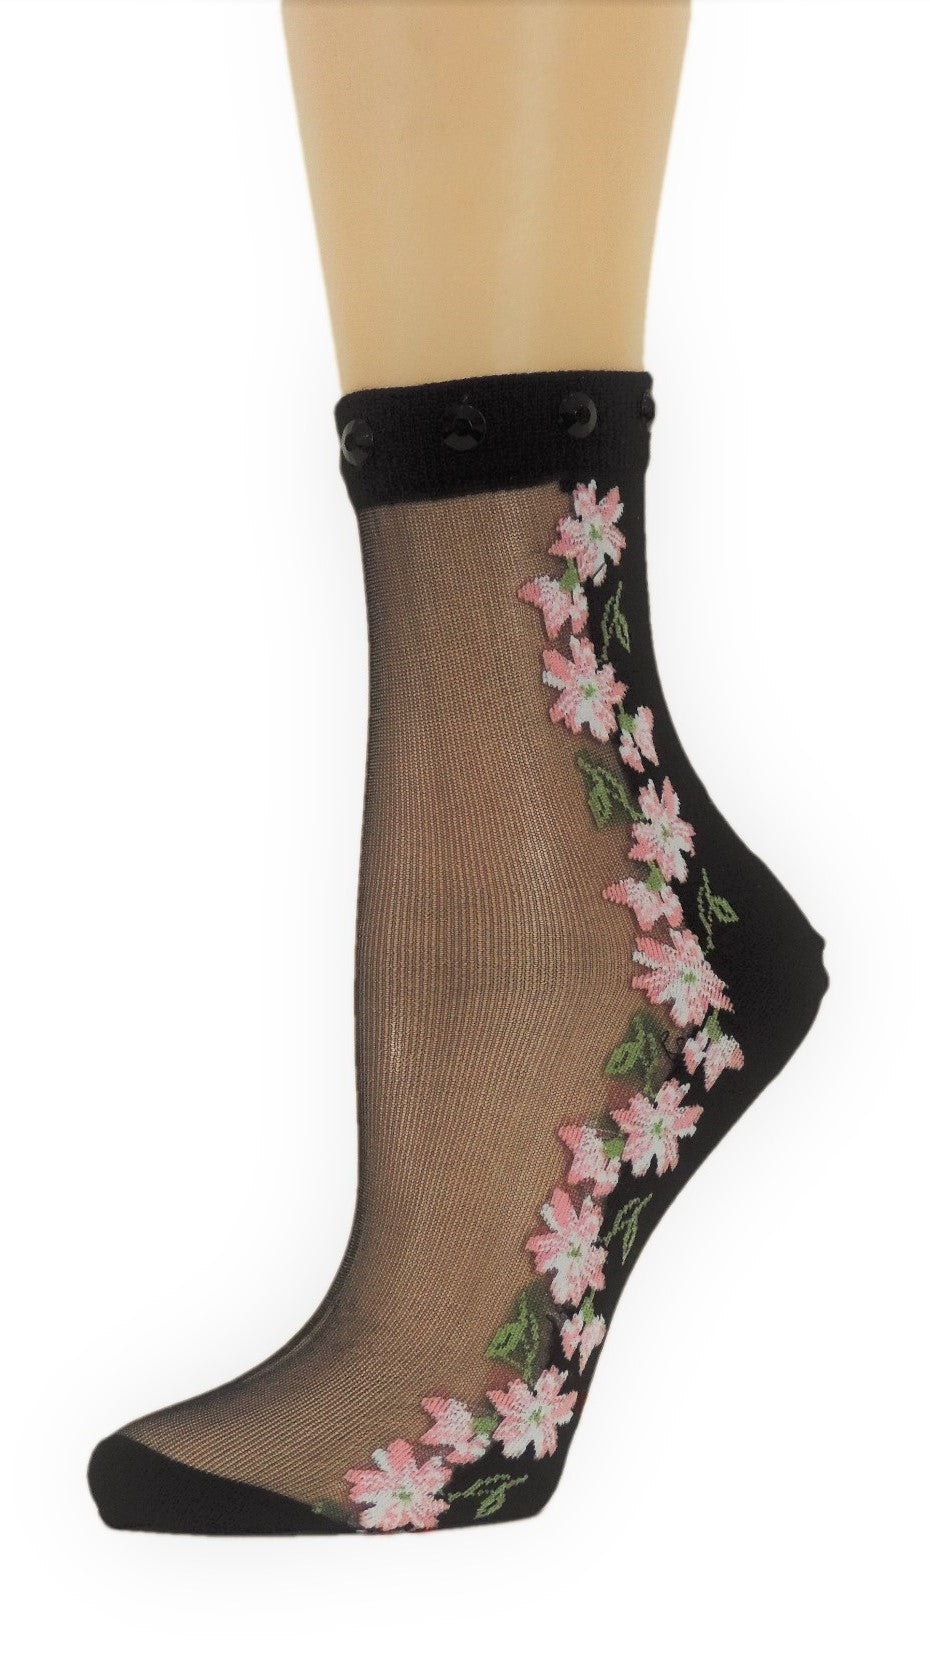 Happy Flowers Custom Sheer Socks with beads - Global Trendz Fashion®